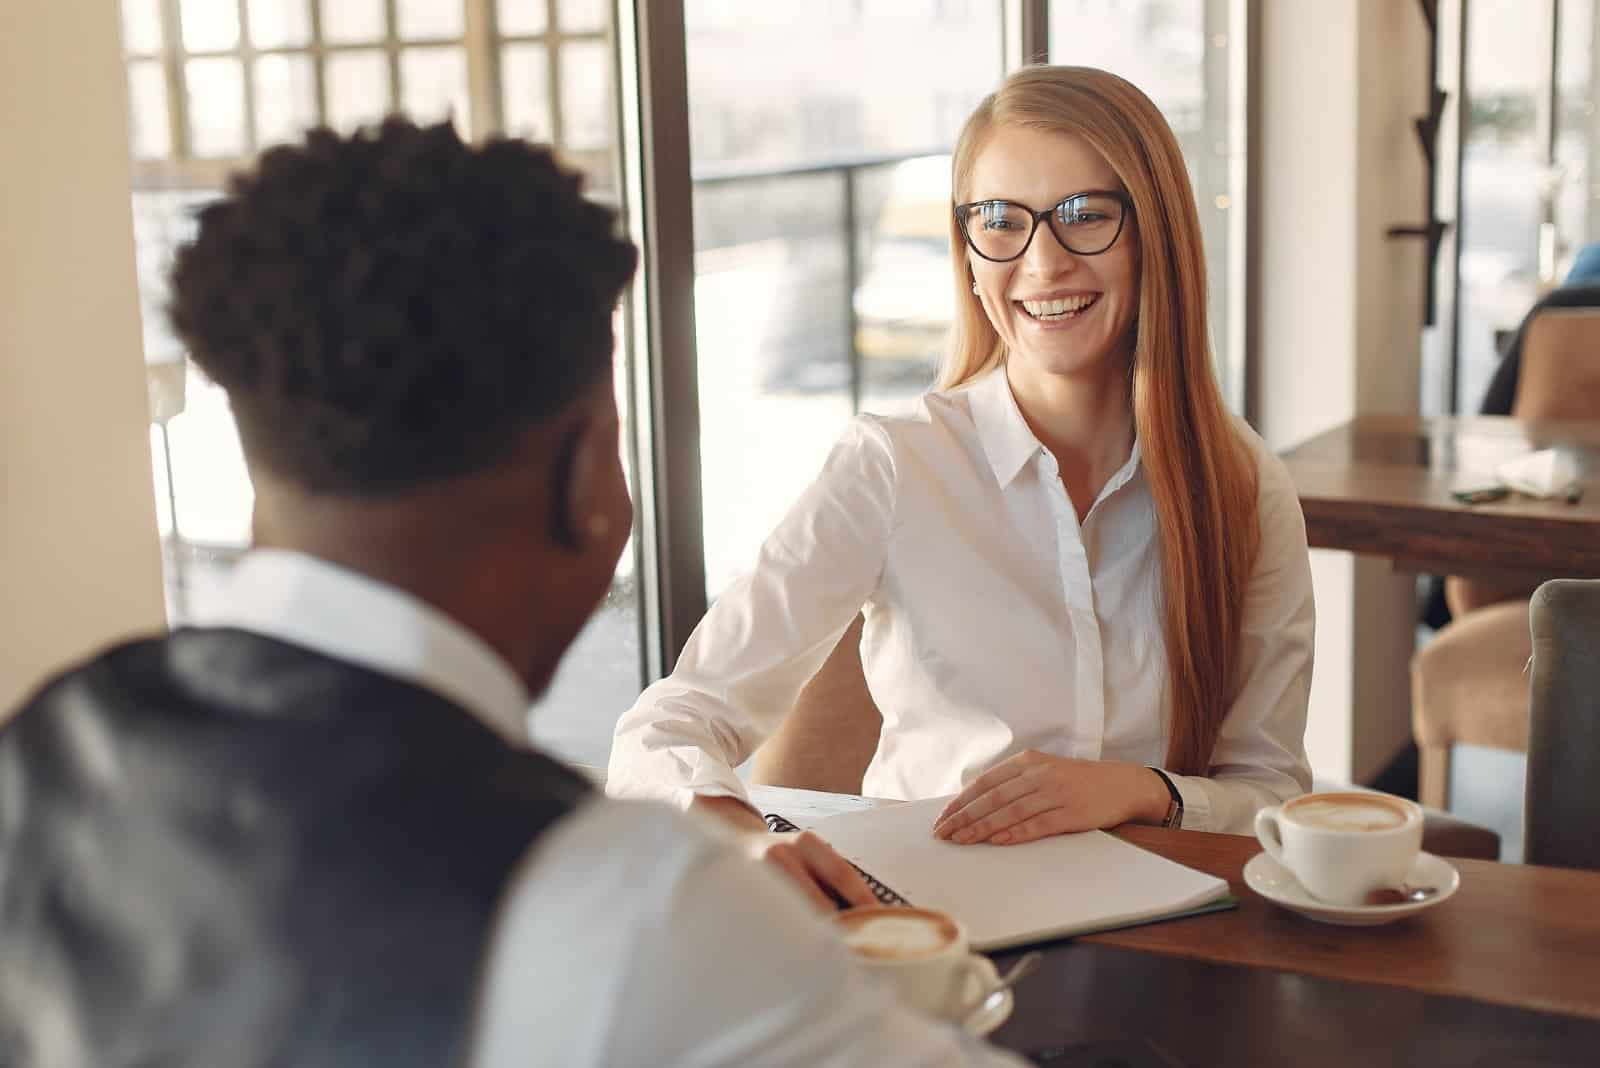 happy woman in white shirt looking at man while sitting in cafe